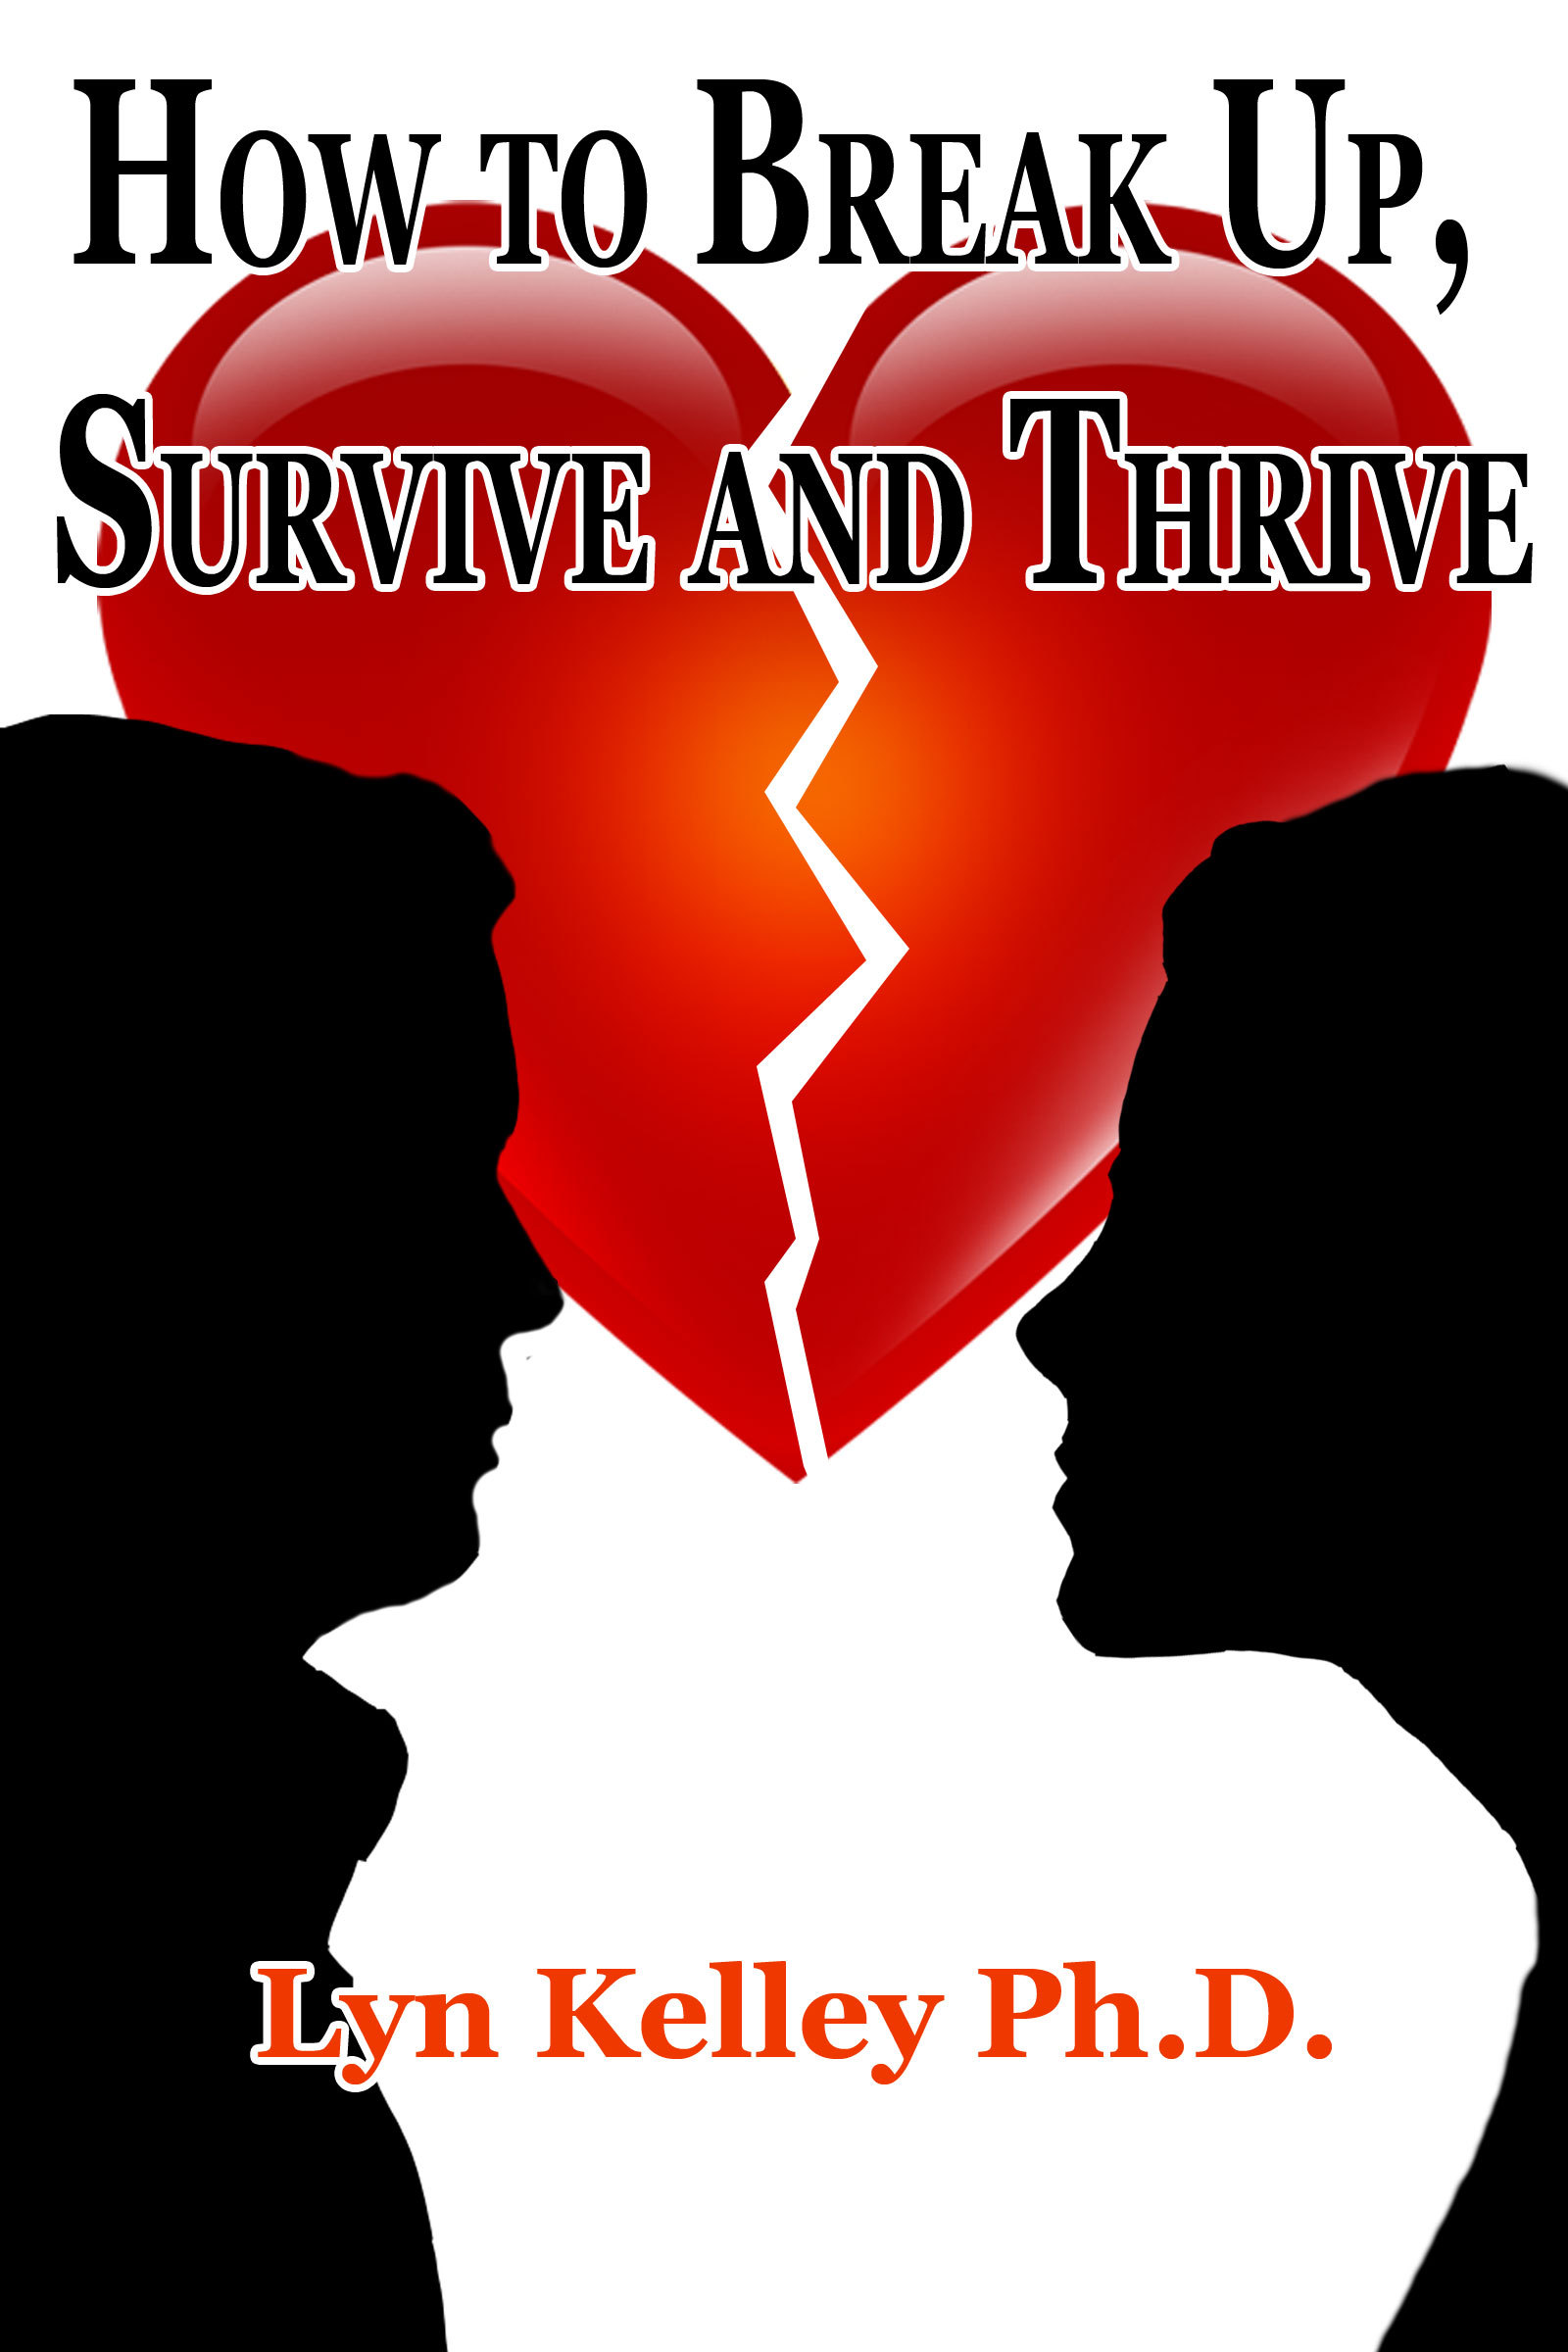 How to Break Up, Survive and Thrive